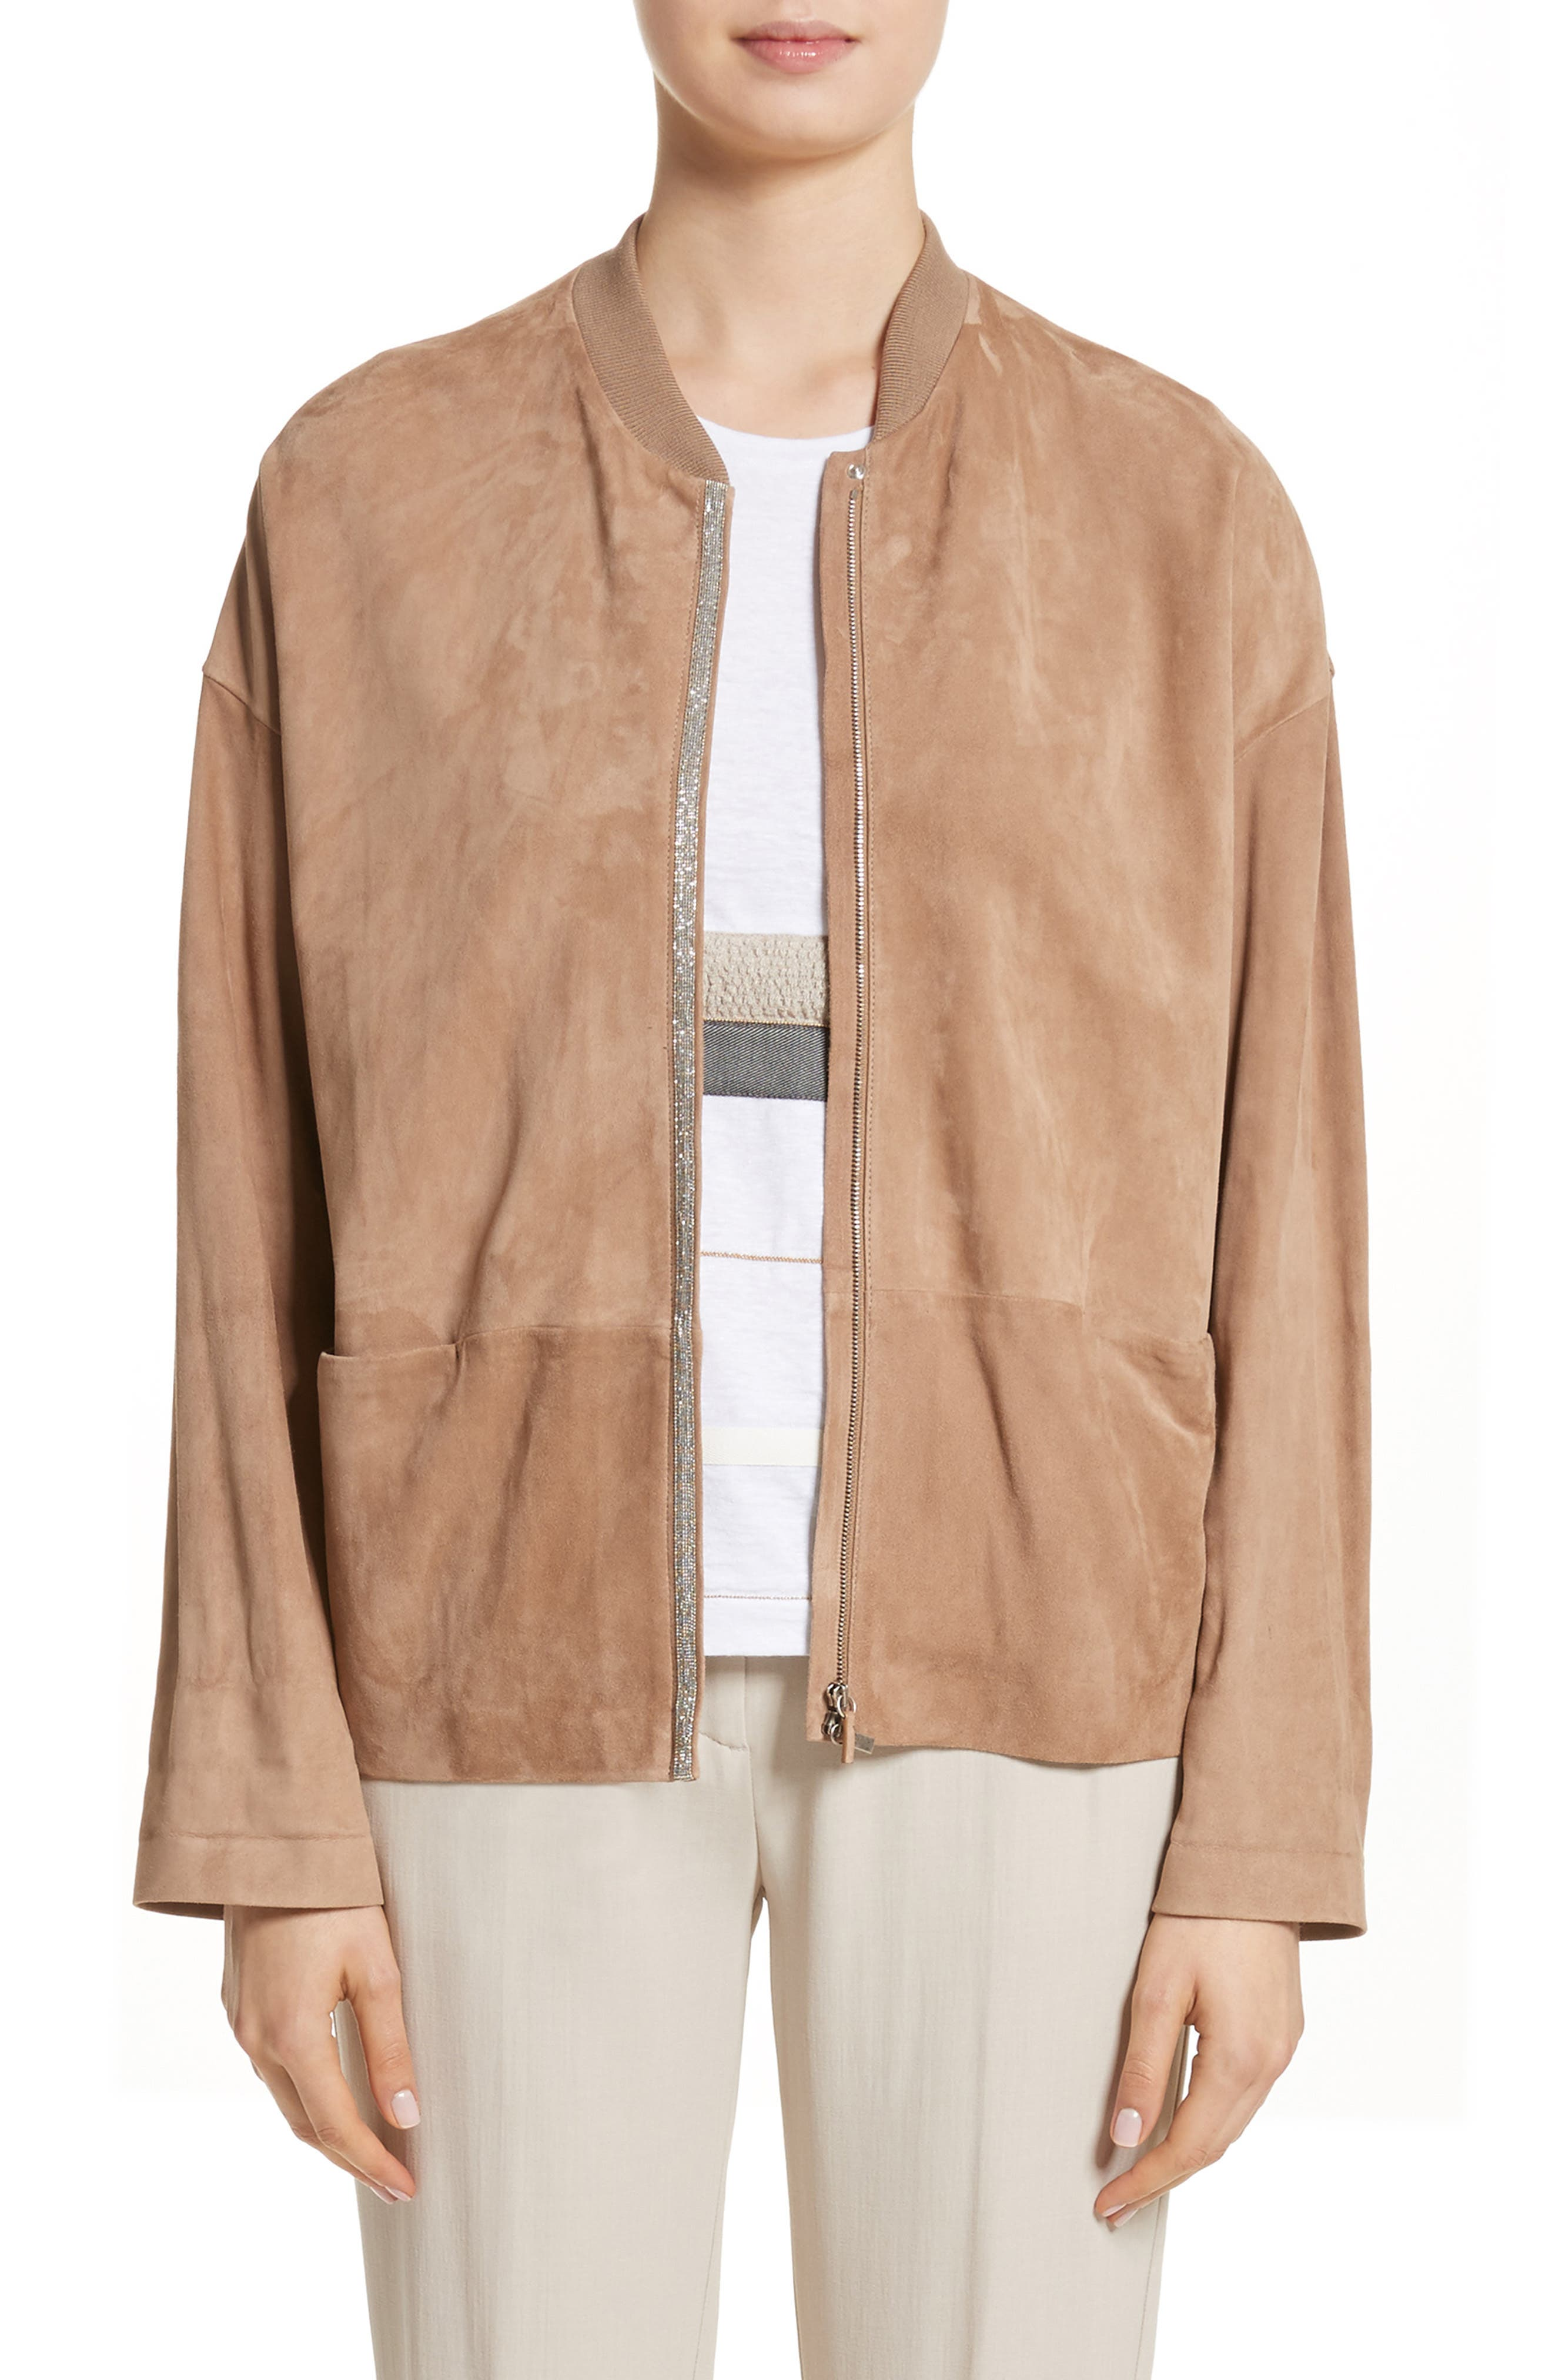 Beaded Suede Jacket,                             Main thumbnail 1, color,                             200